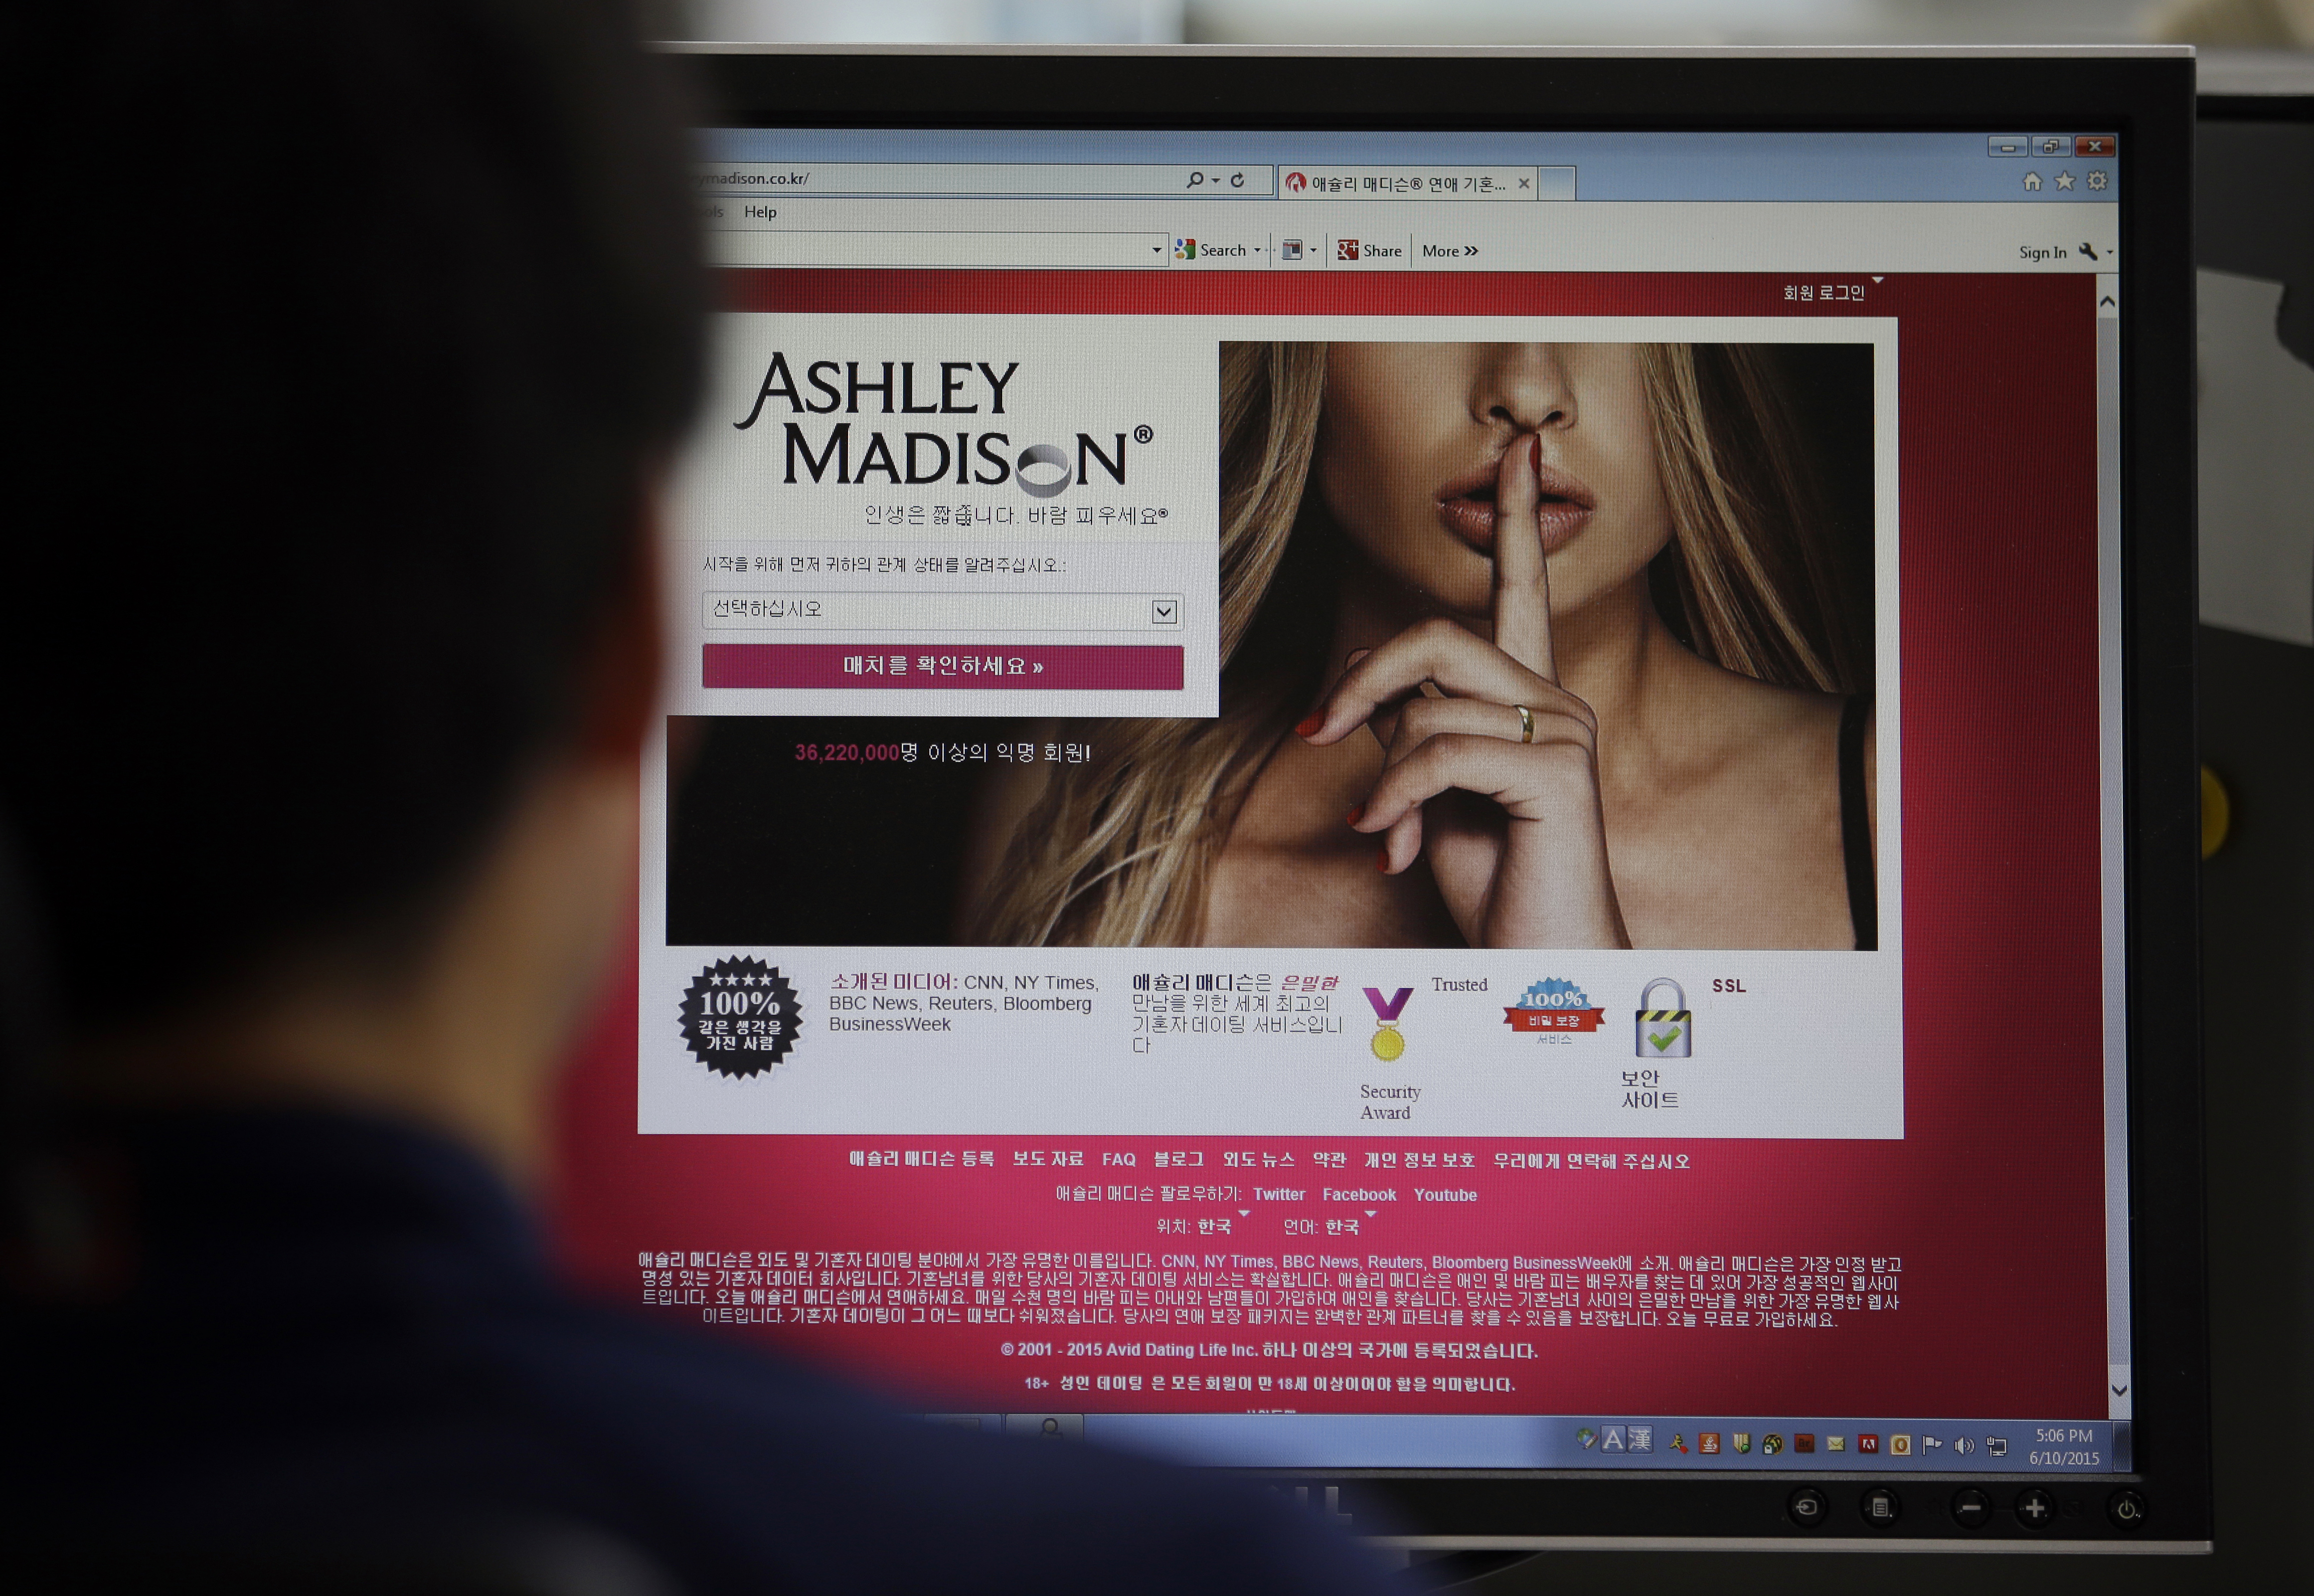 In this June 10, 2015 photo, Ashley Madison's Korean web site is shown on a computer screen in Seoul, South Korea